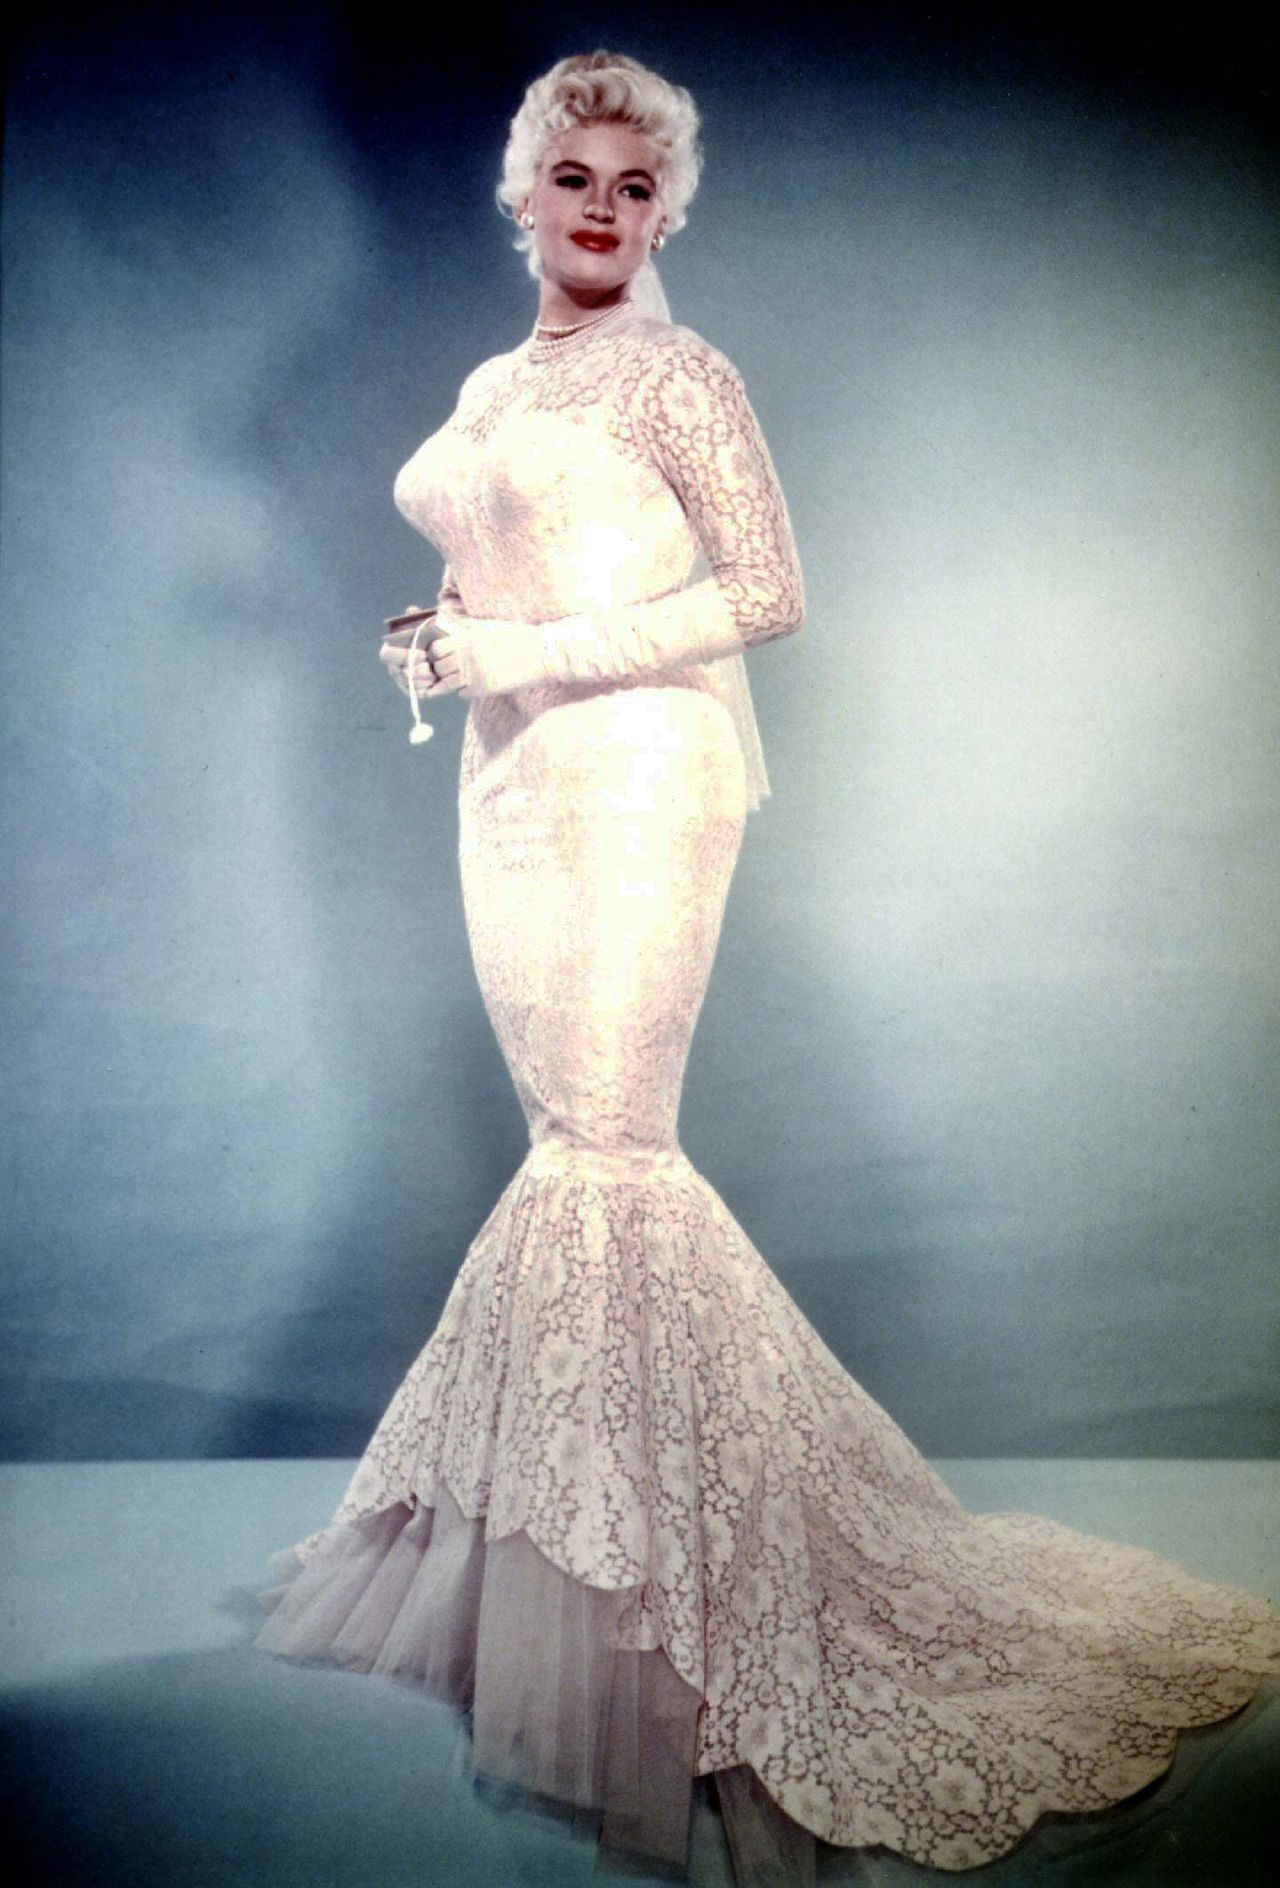 the mermaid gown iconic old hollywood glamour silhouette